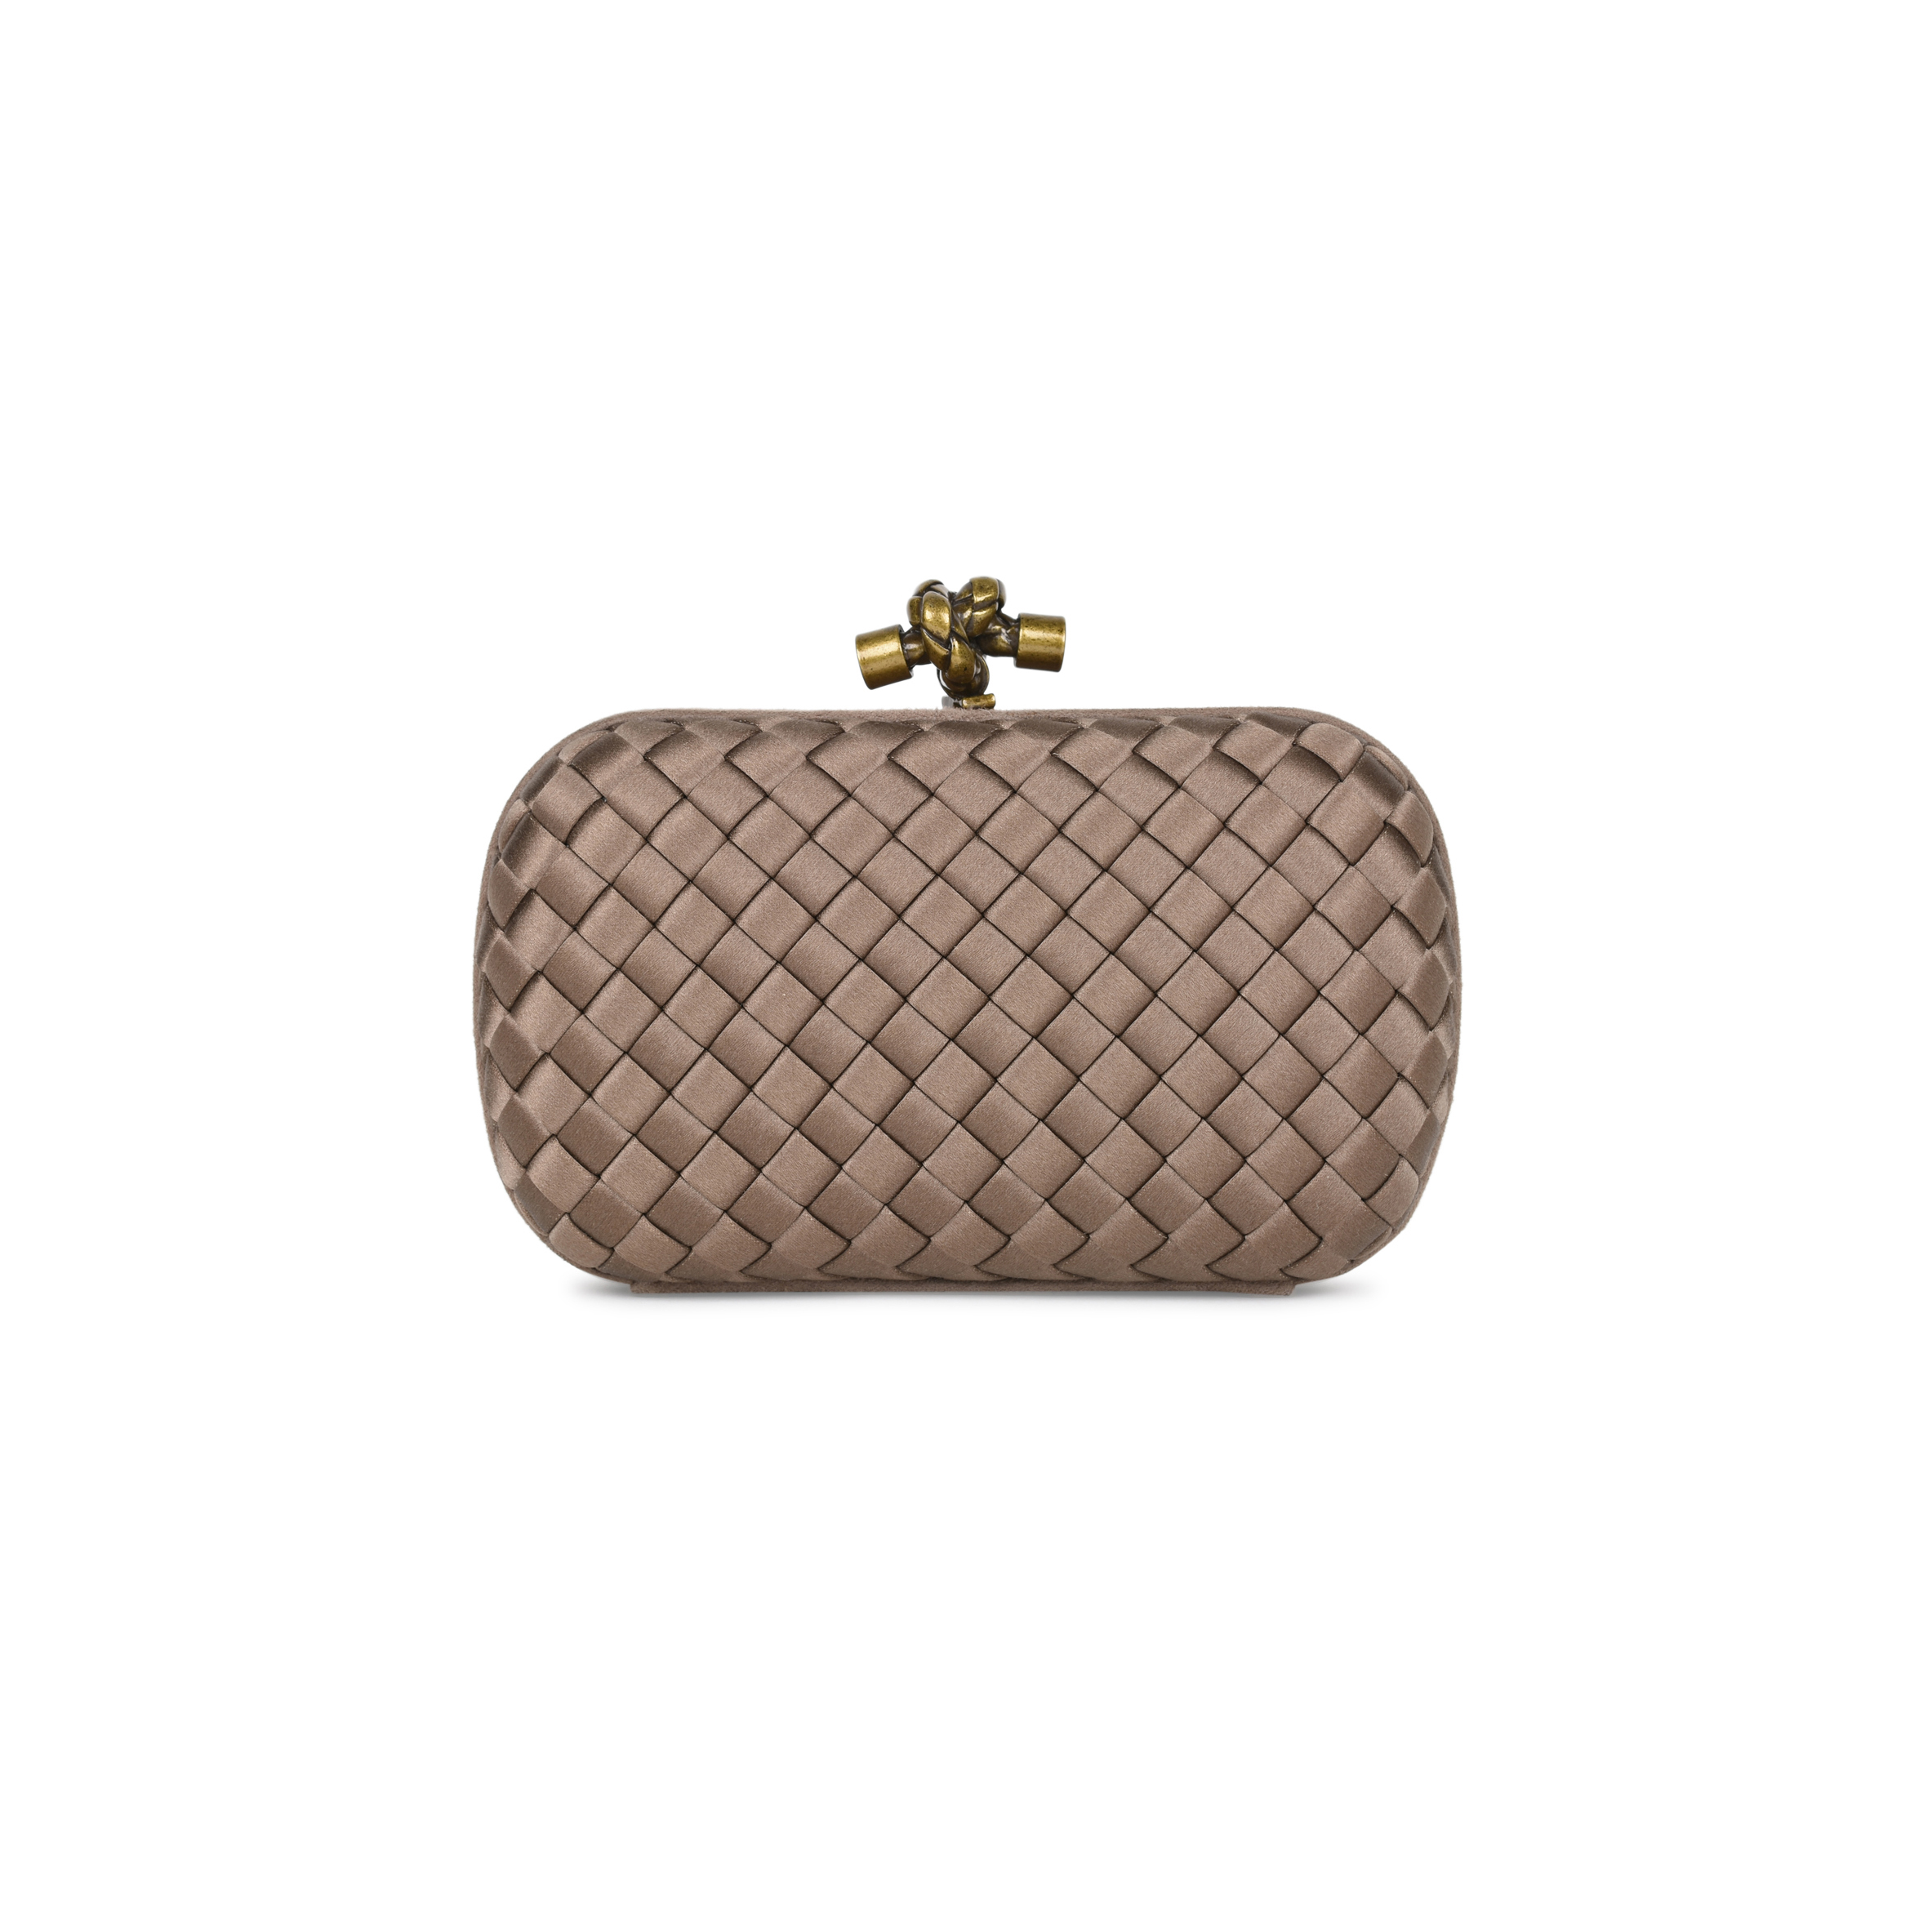 5c2b87cdb4 Authentic Second Hand Bottega Veneta Satin Knot Clutch (PSS-540-00002)